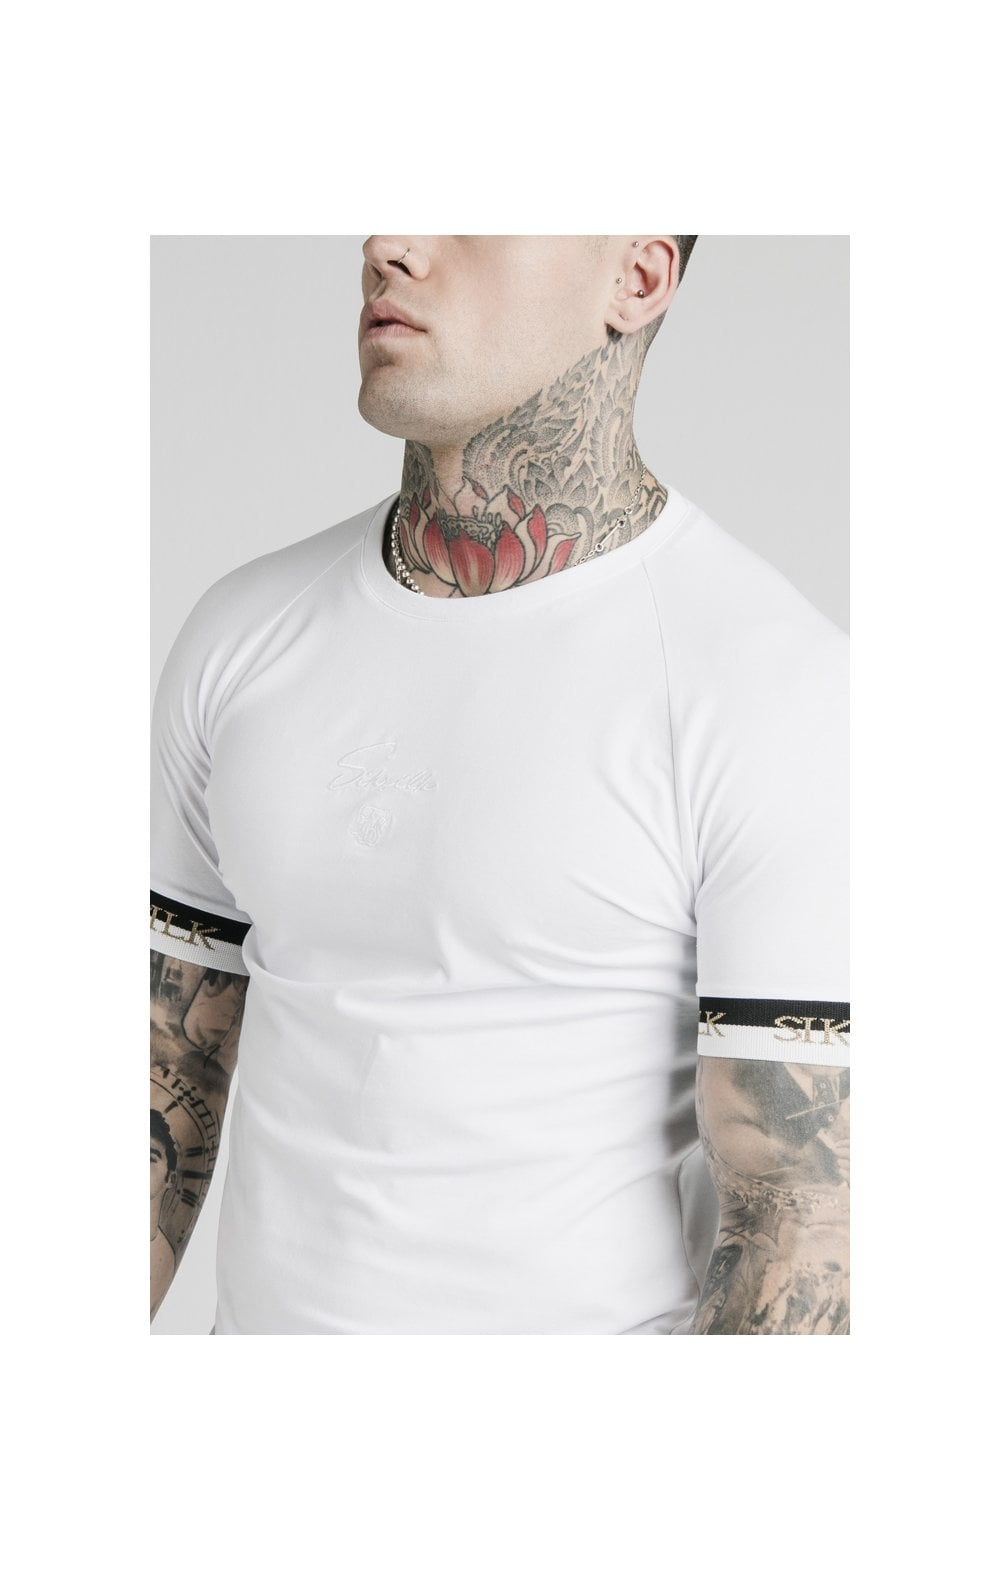 Load image into Gallery viewer, SikSilk S/S Deluxe Raglan Tech Tee - White